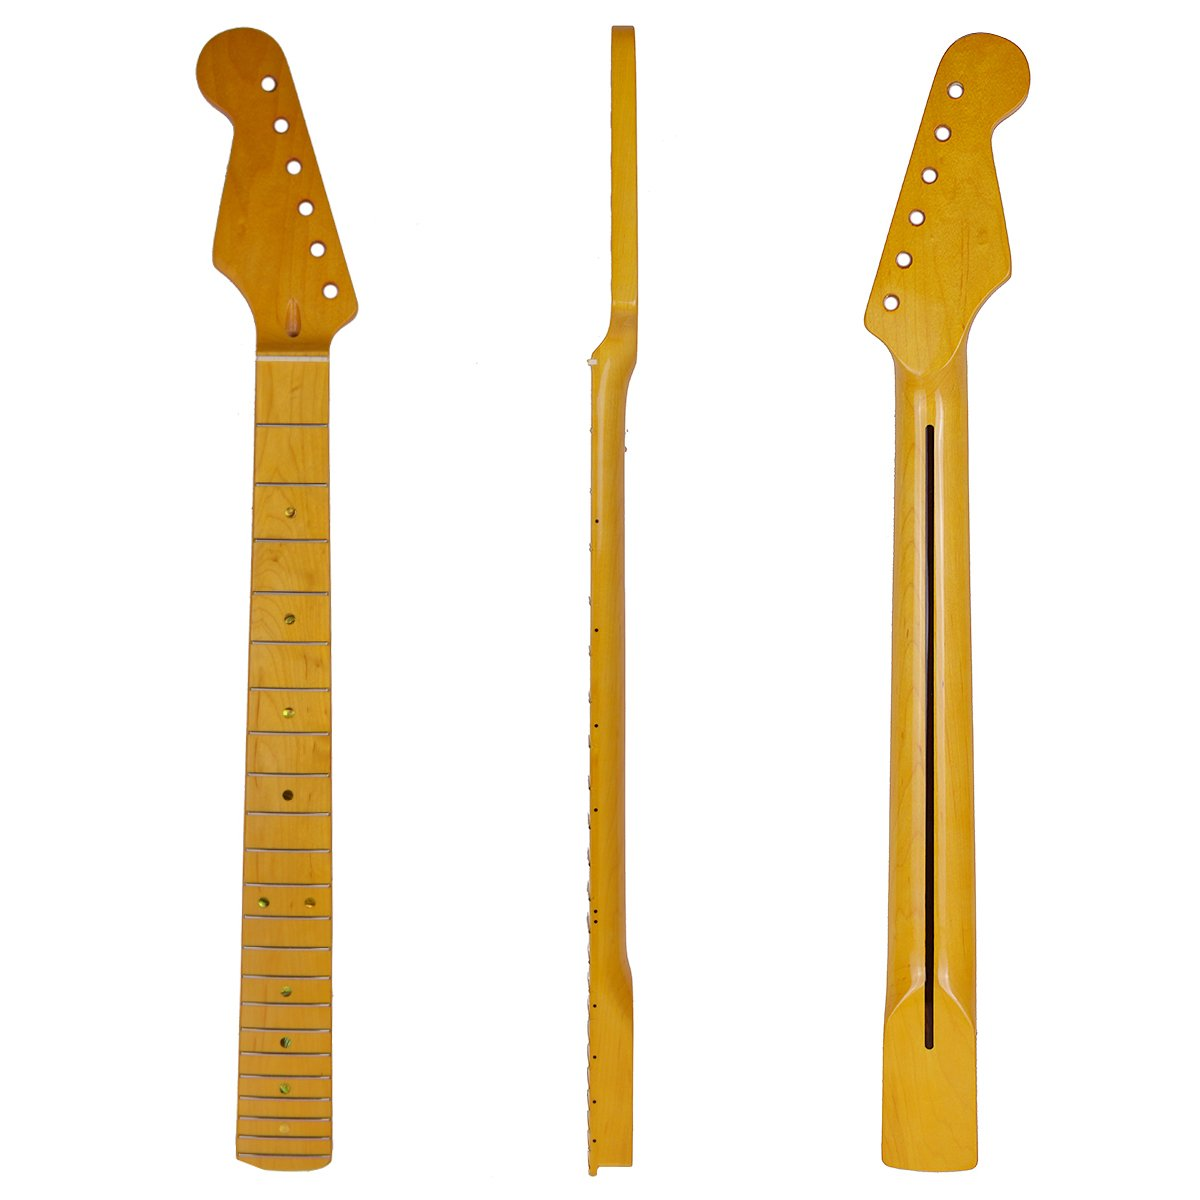 Kmise Lefty Left Handed Electric Guitar Neck for Strat Parts Replacement Maple 22 Fret Yellow Painted